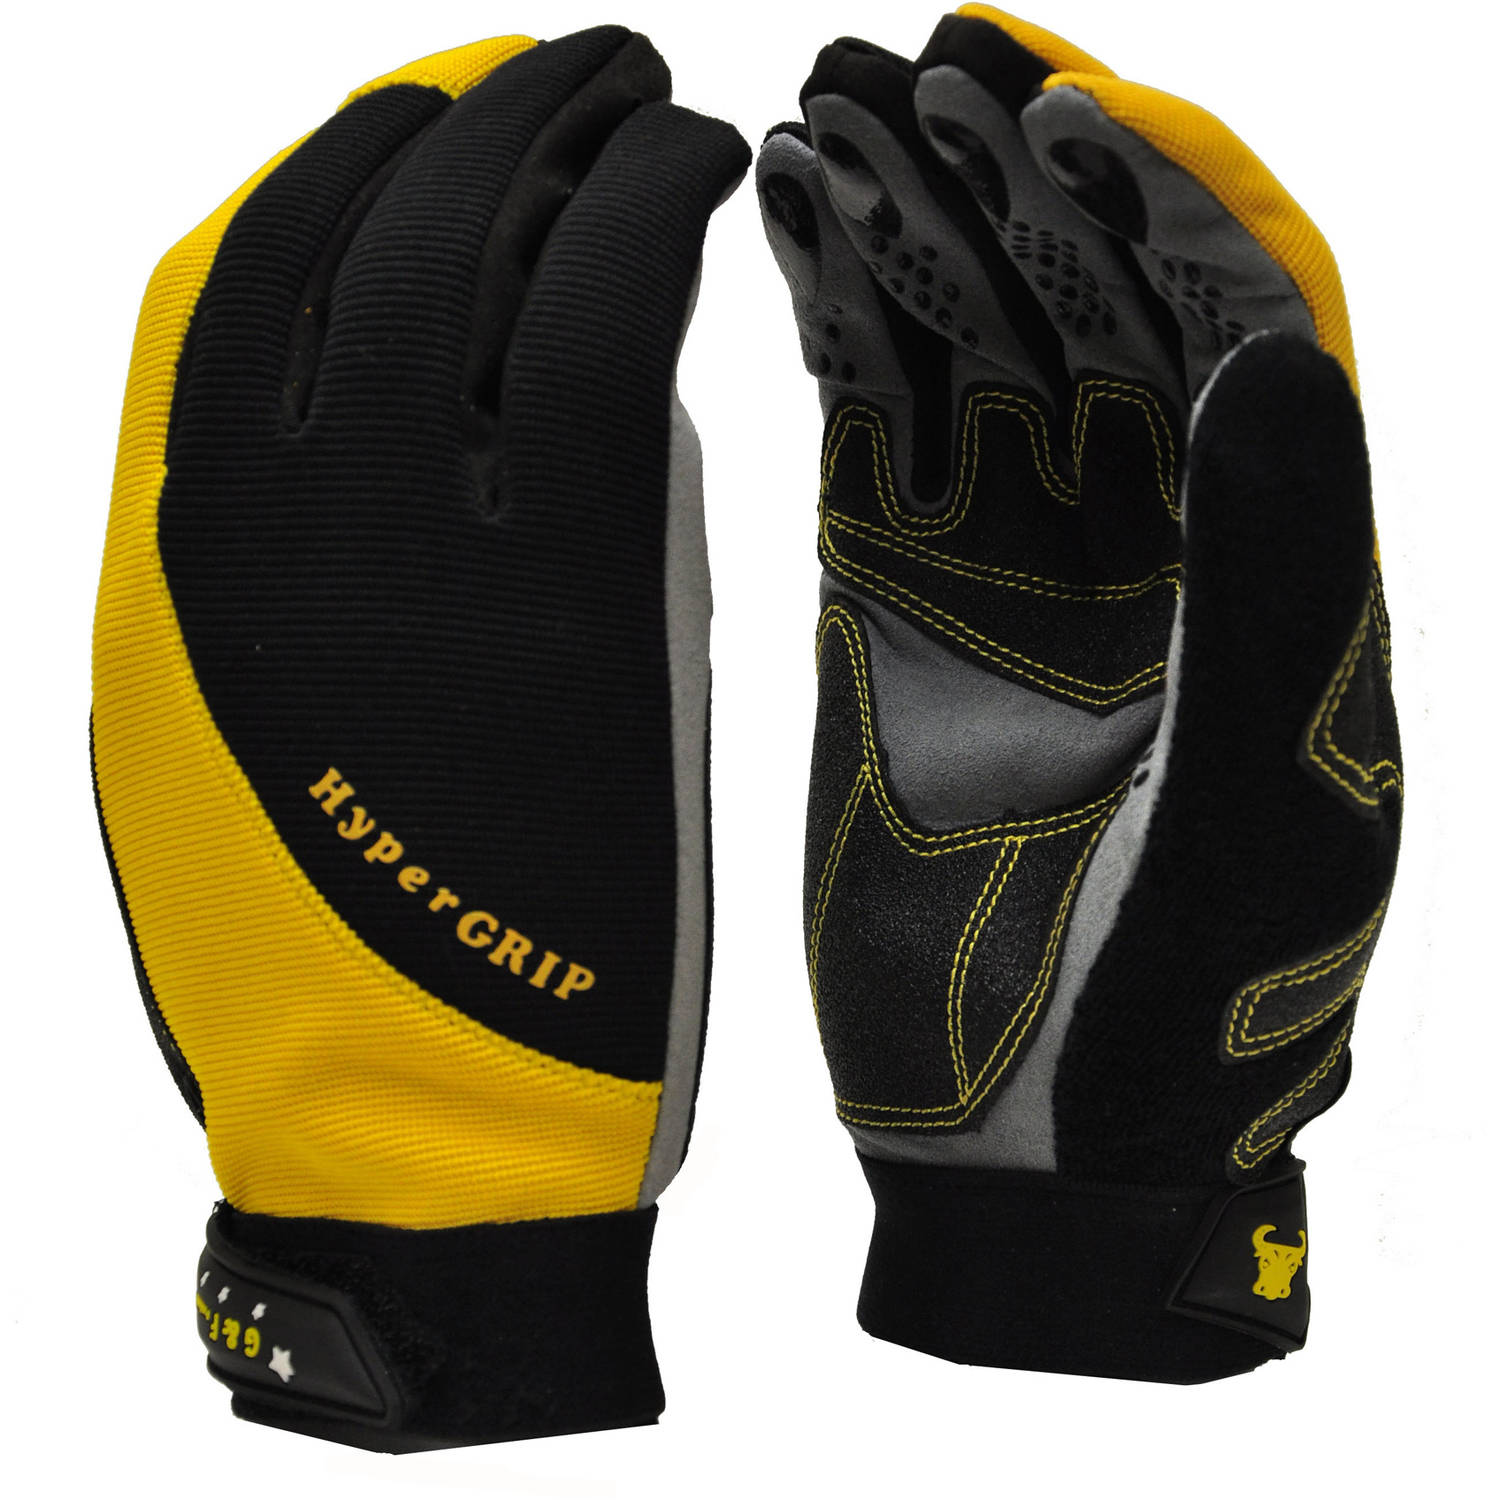 G & F Hyper Grip Non-Slip High-Performance Work Gloves, Large